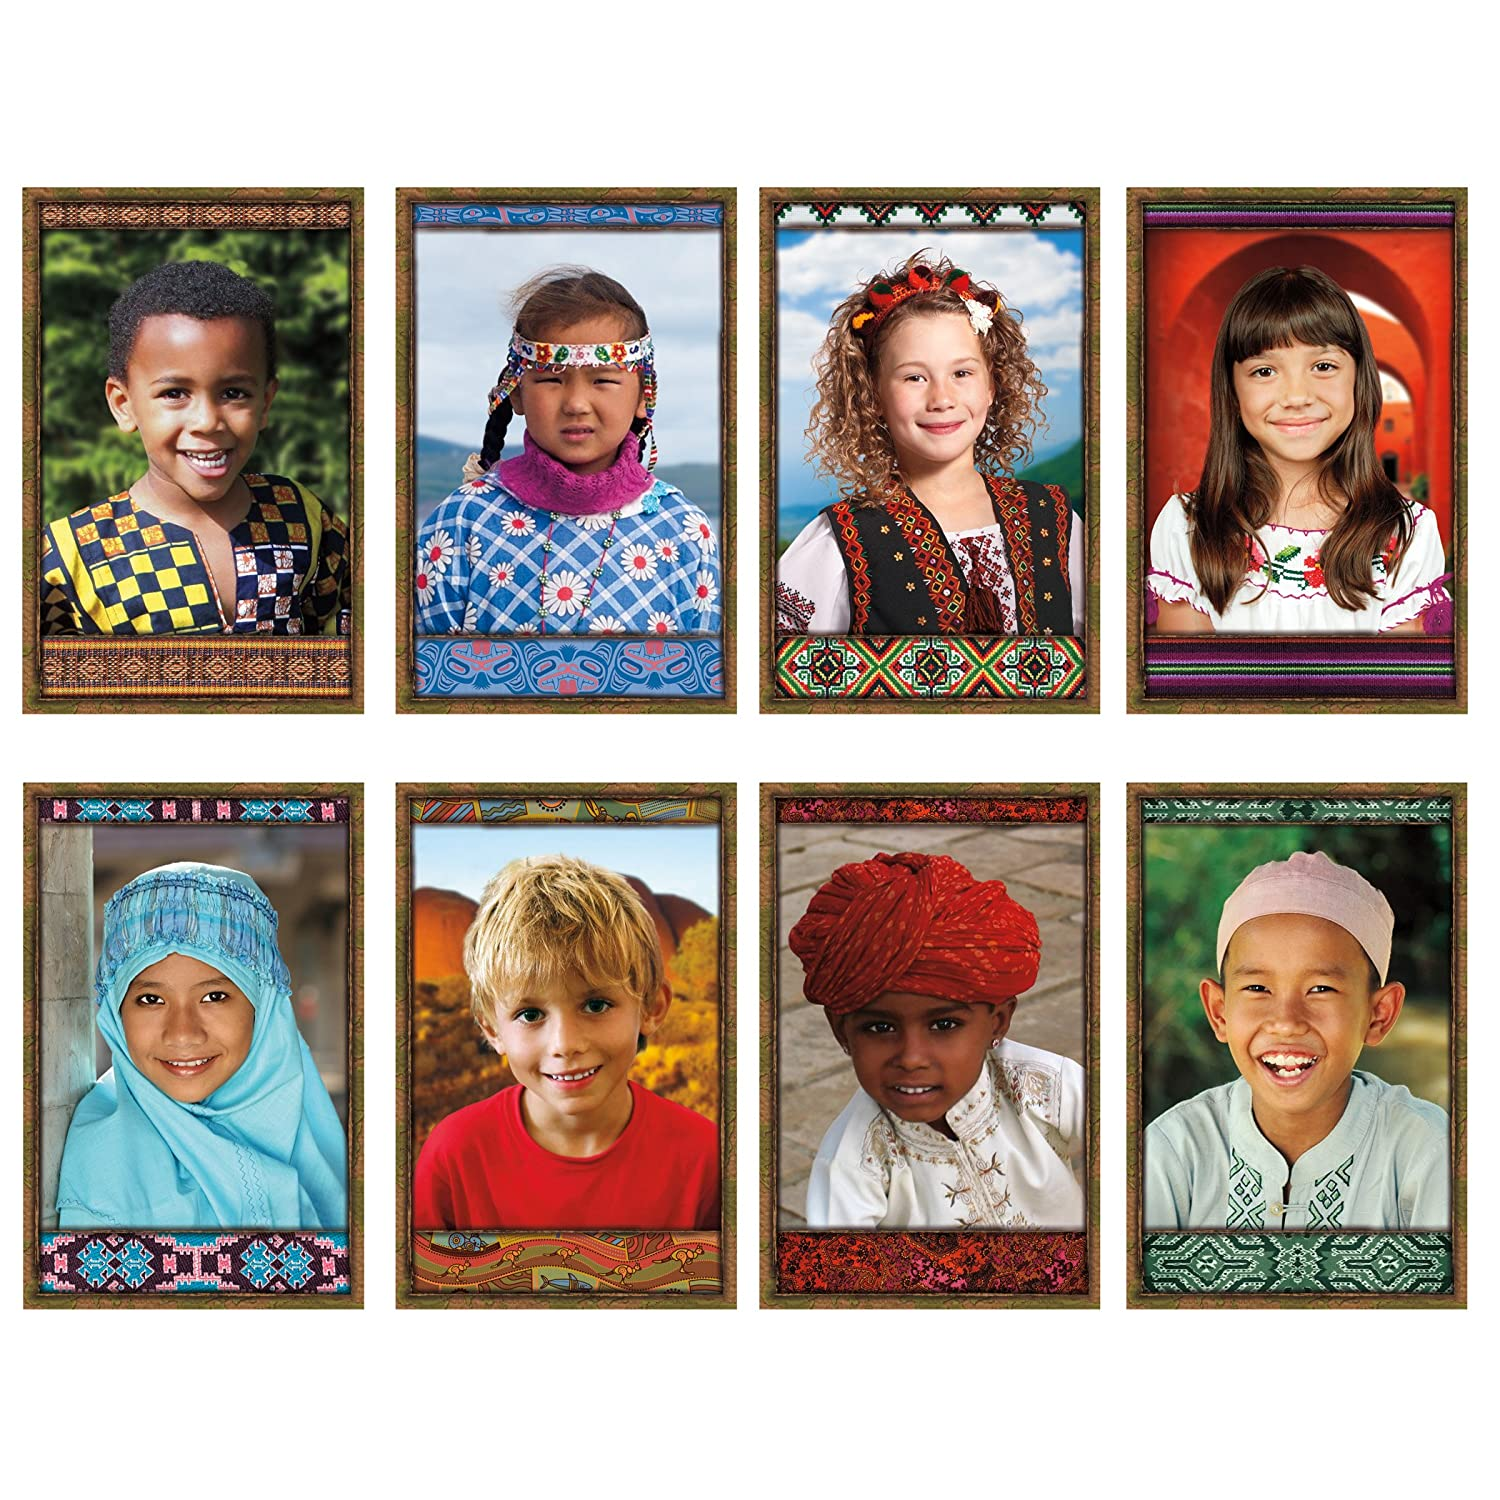 NORTH STAR TEACHER RESOURCE All Kinds of Kids International Bulletin Board Set NST3031